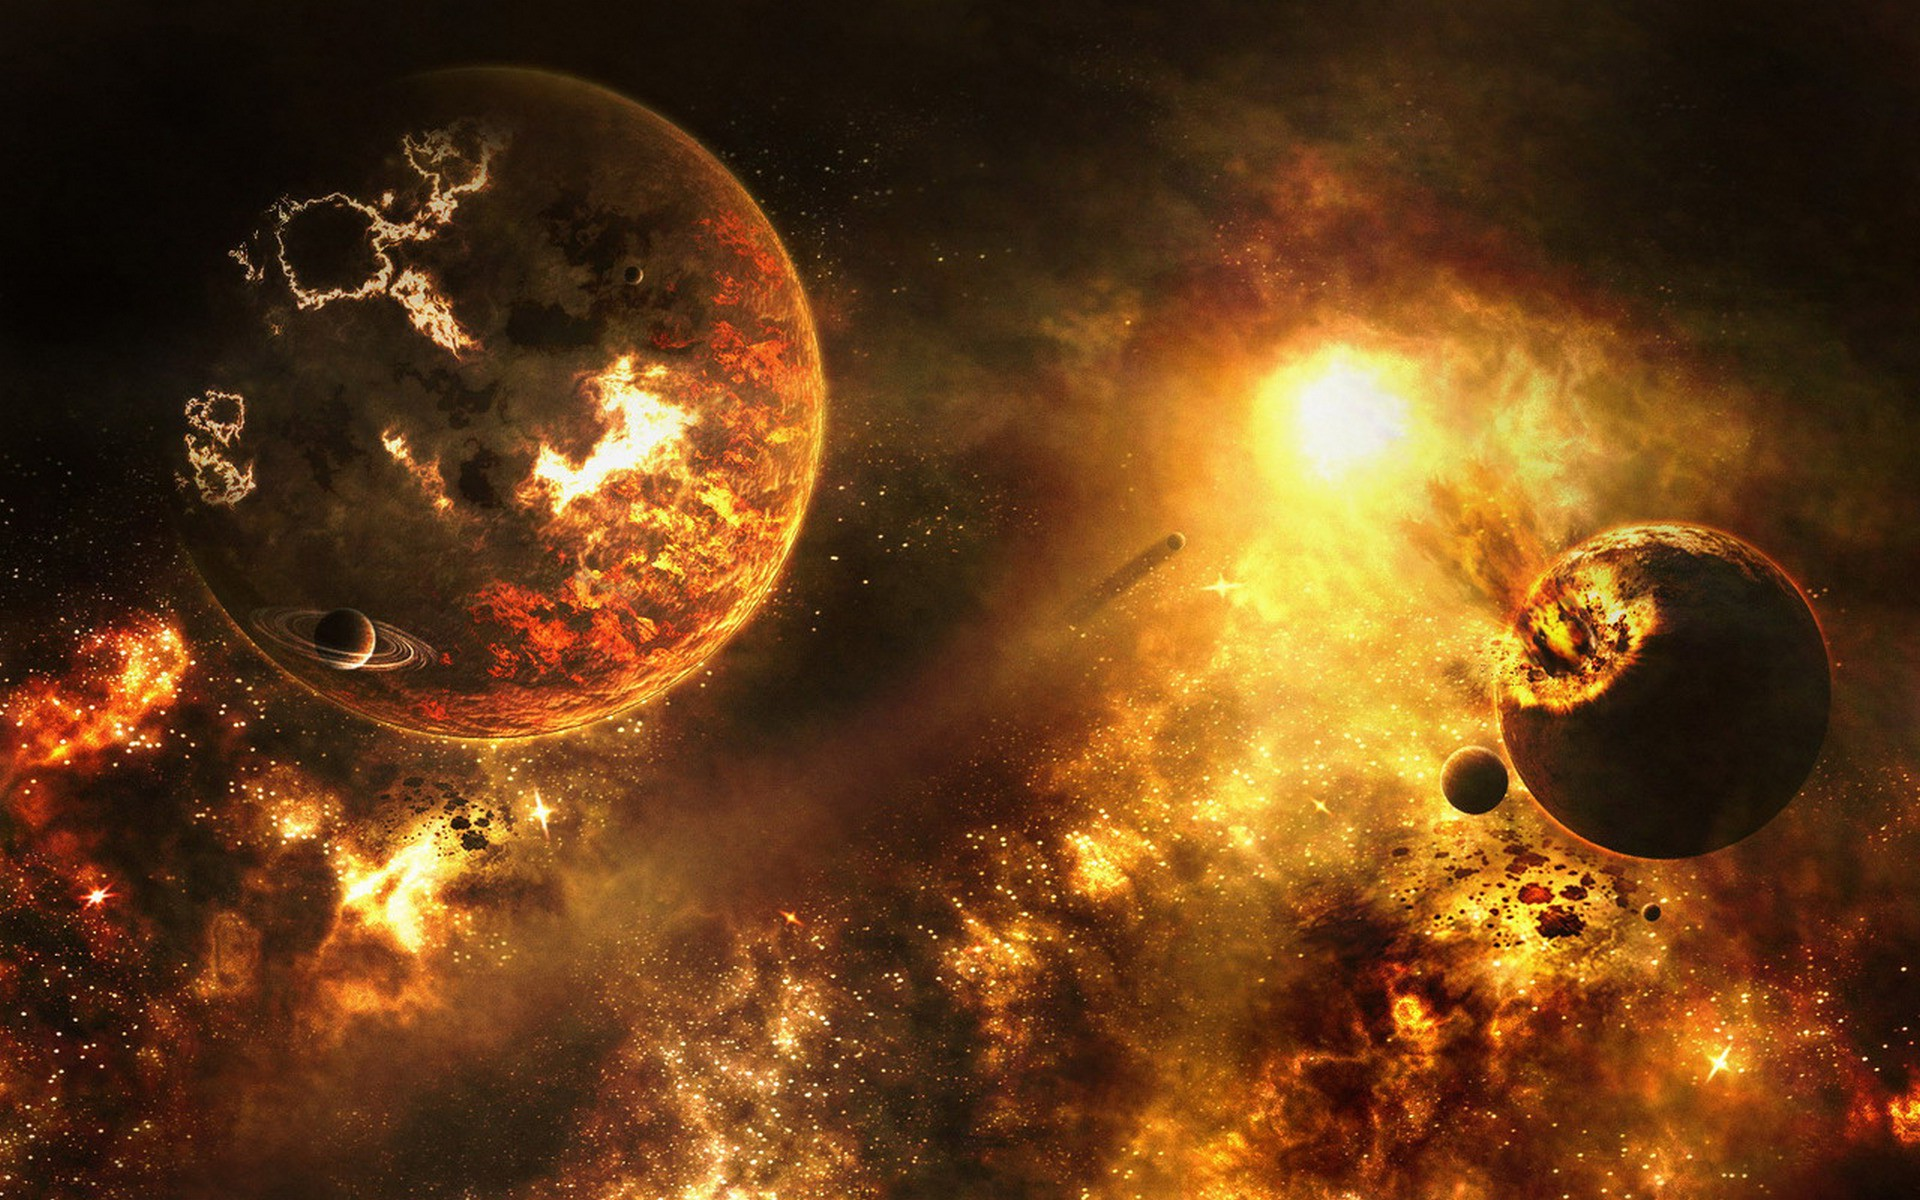 Animal Planet Wallpaper Hd Explosion Space Art Planet Sun Wallpapers Hd Desktop